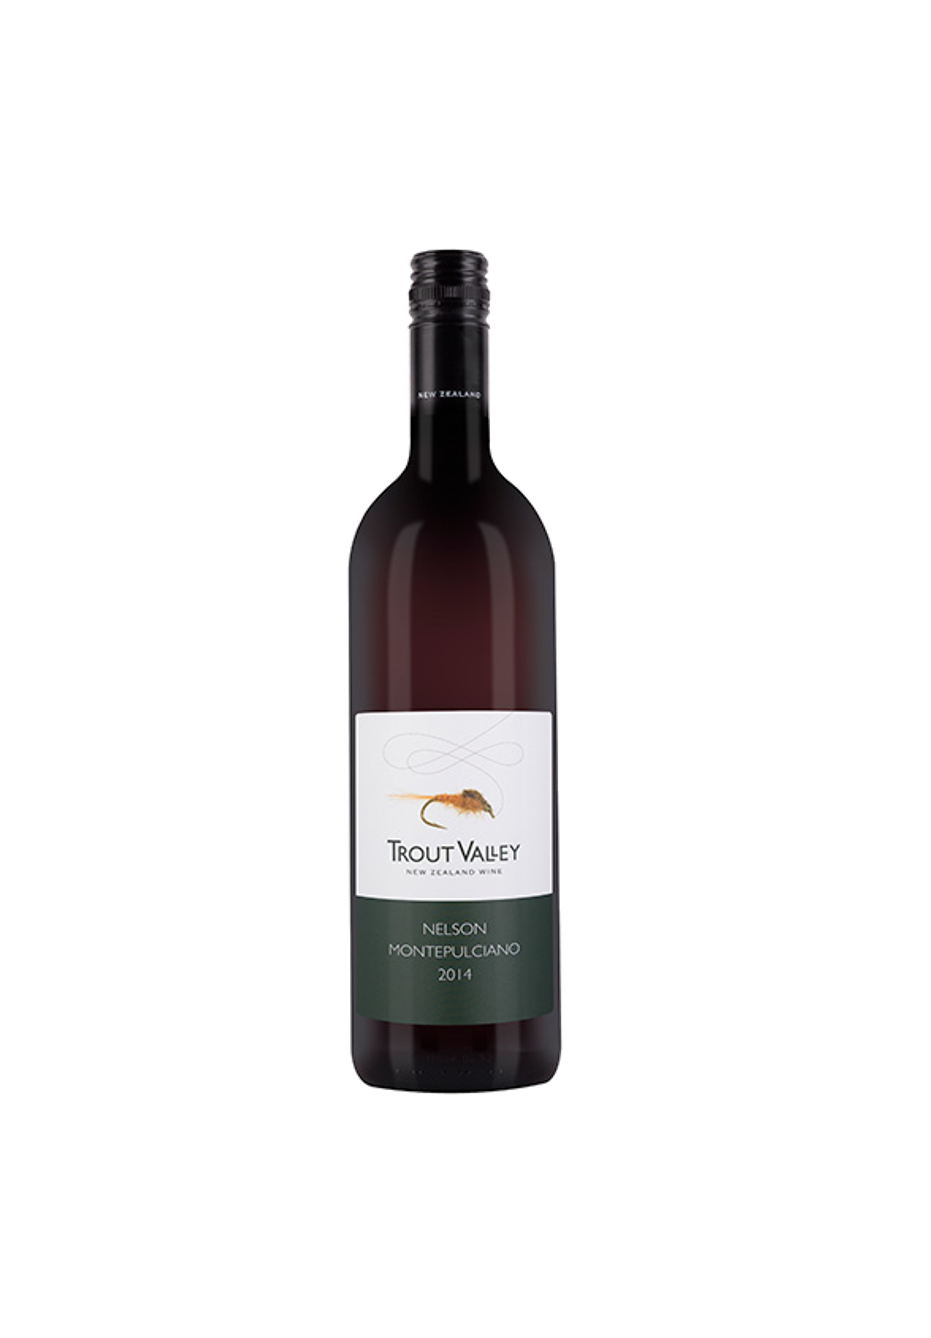 Trout Valley Nelson Montepulciano 2014